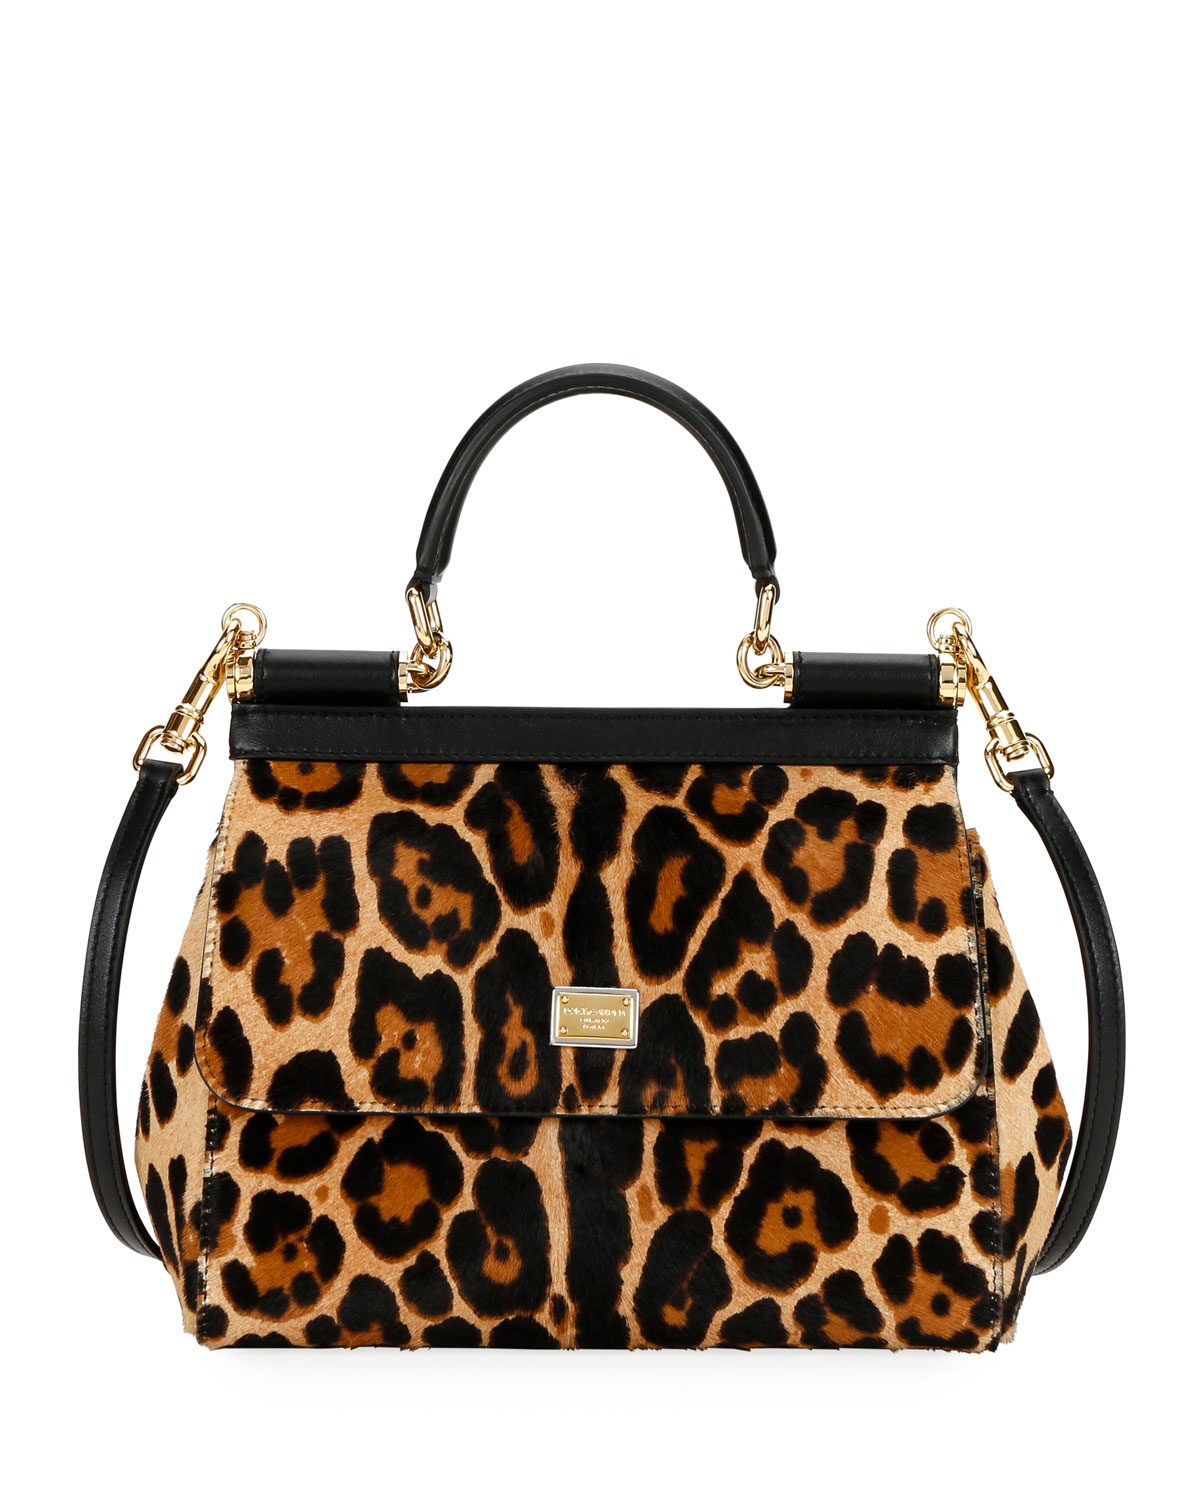 Dolce & Gabbana Devotion Borsa Leopard Top-Handle Bag